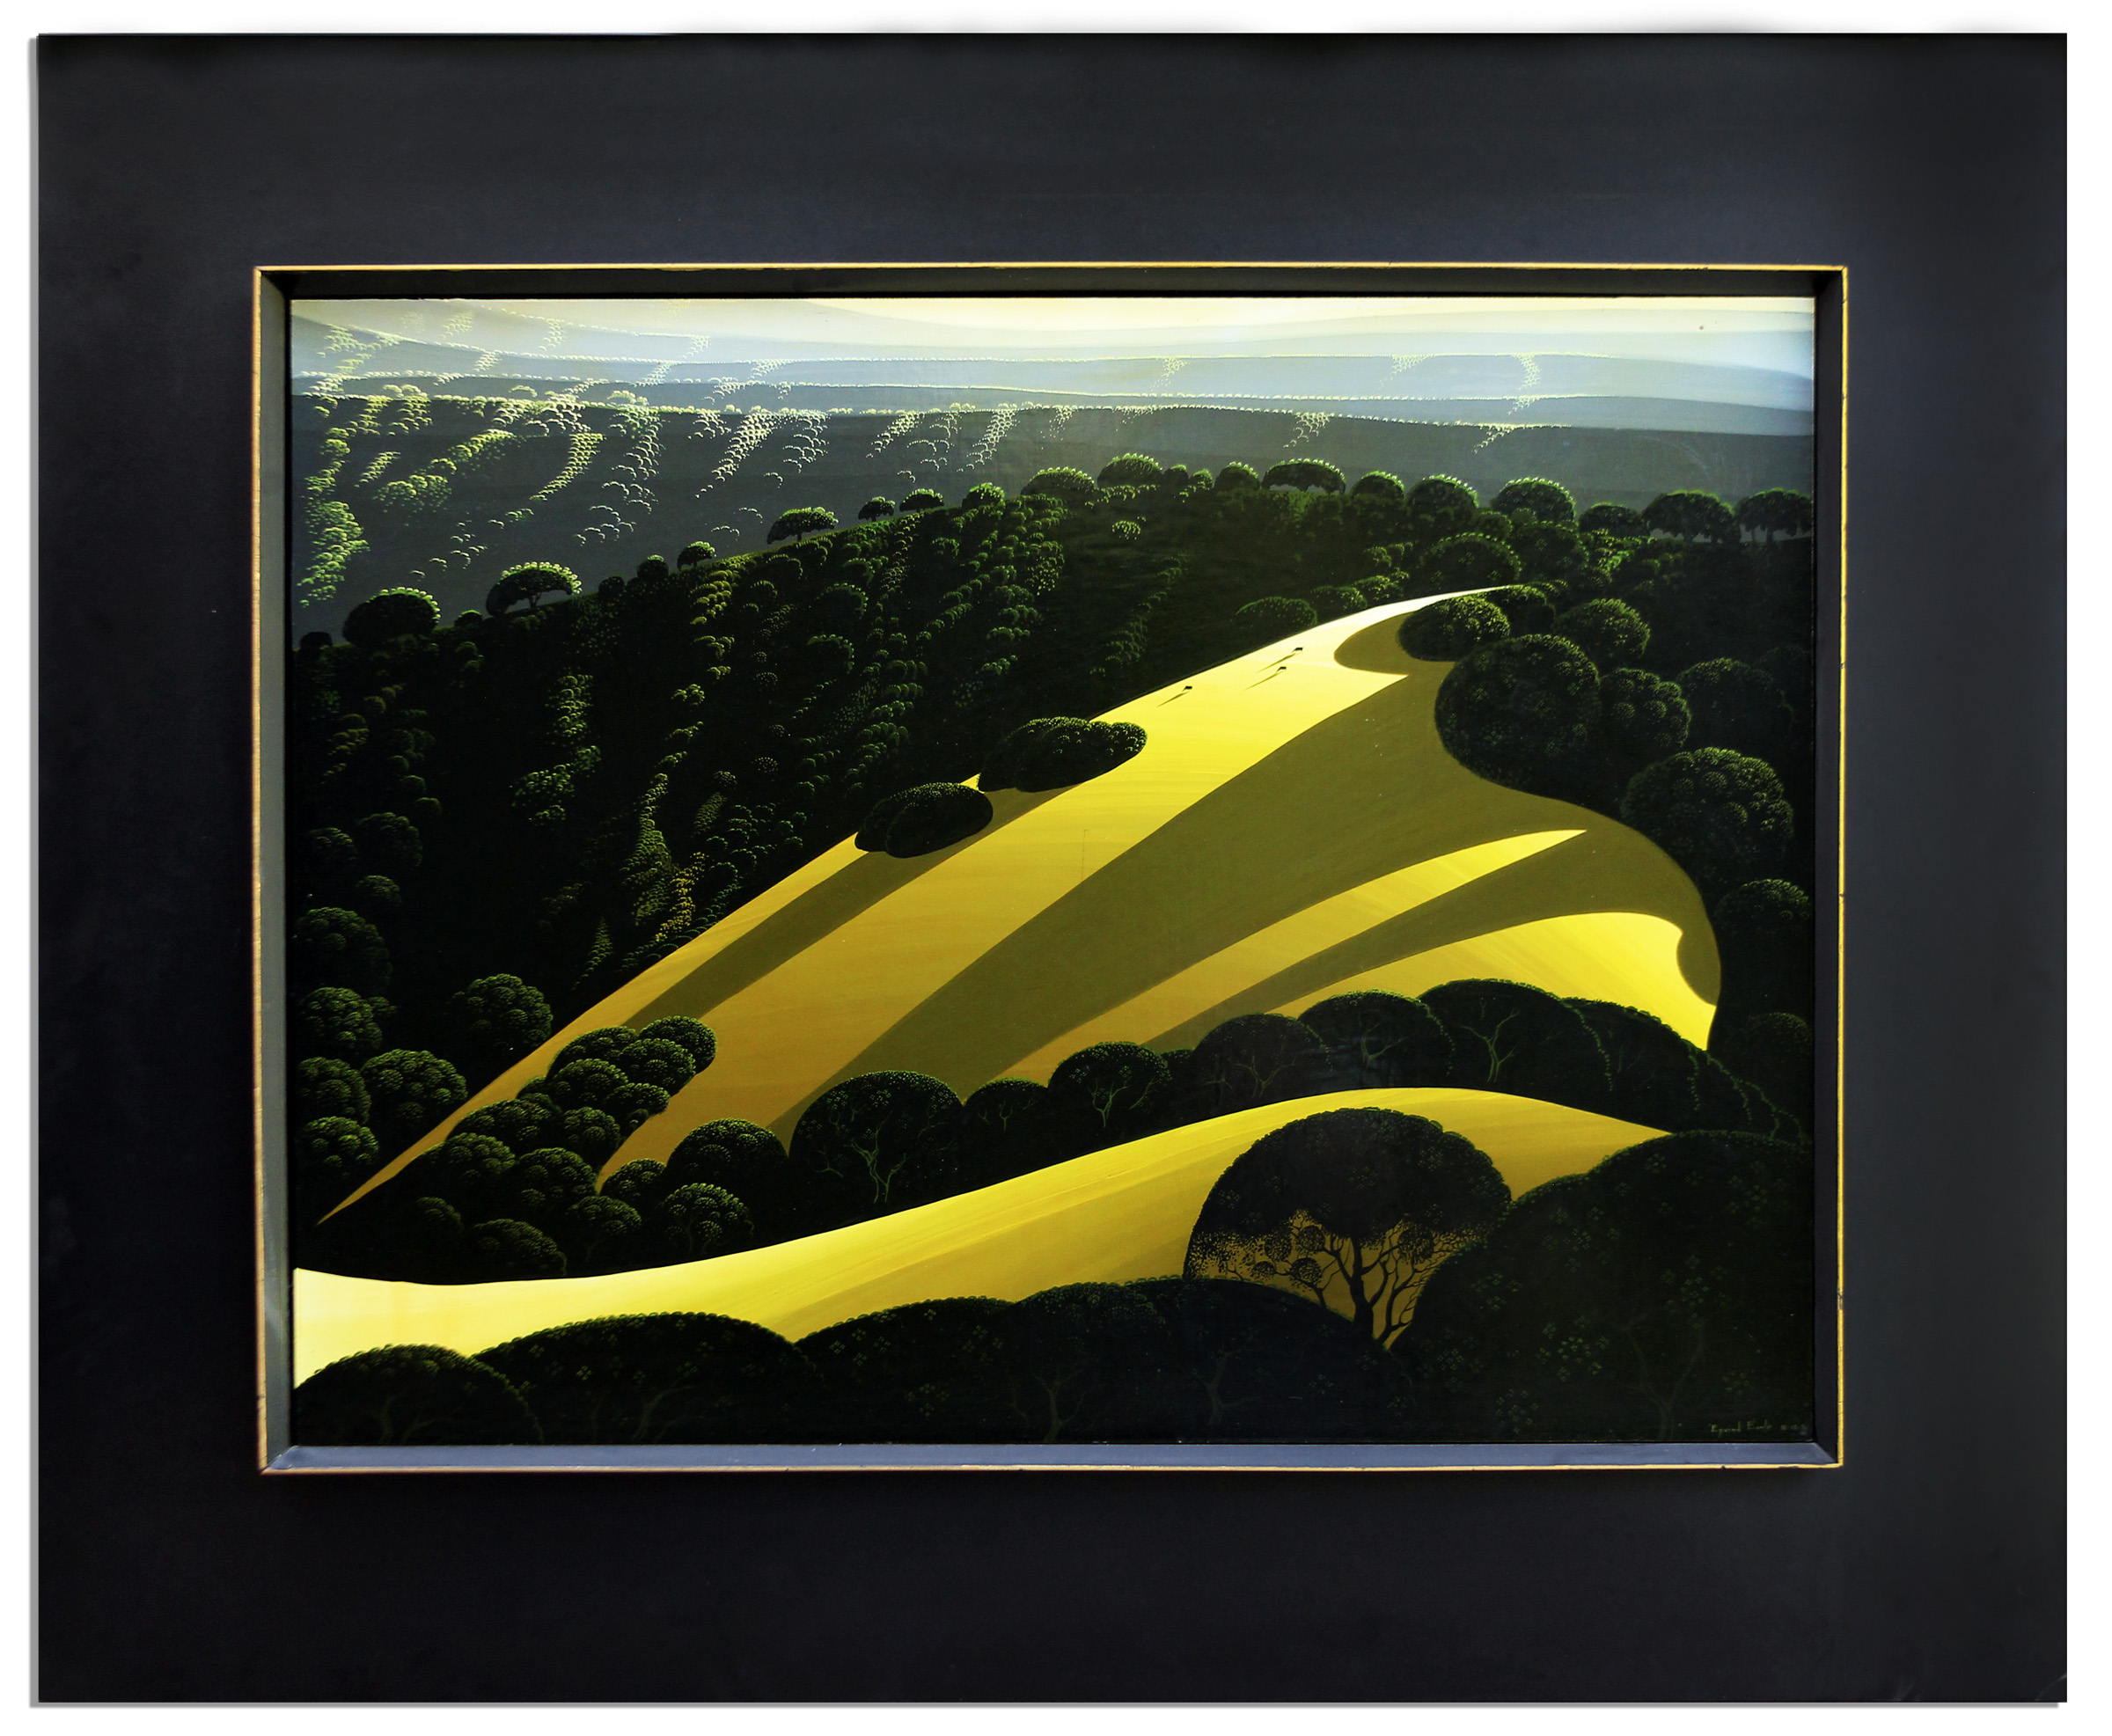 Eyvind Earle Art Eyvind Earle Original Oil Painting From Ray Bradbury's Personal Estate